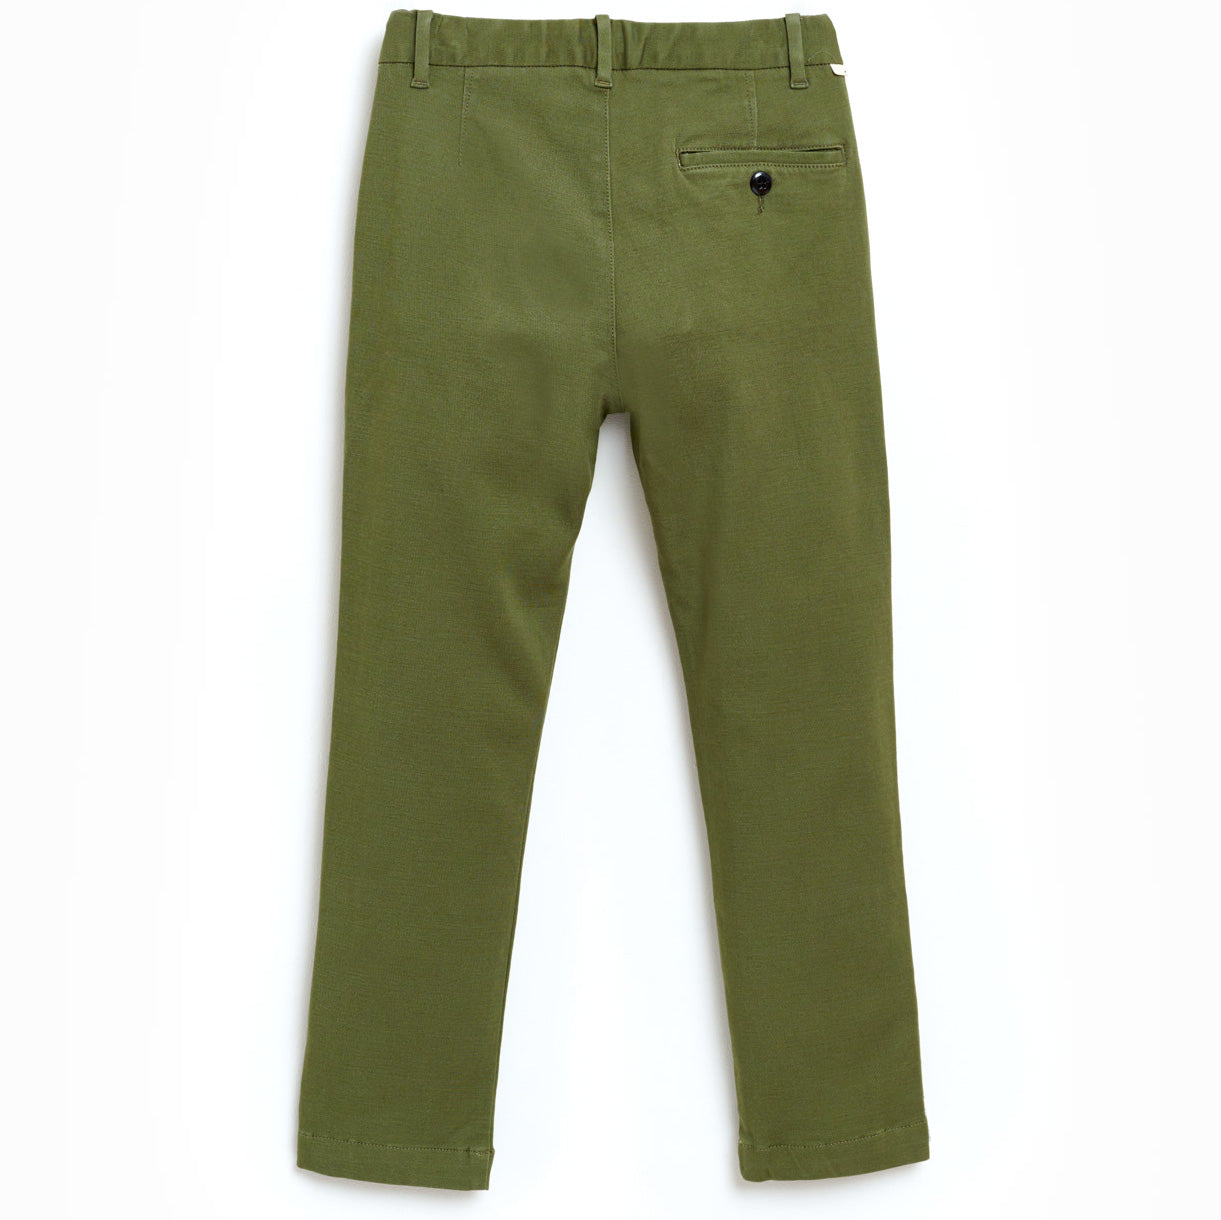 bellerose perry chinos